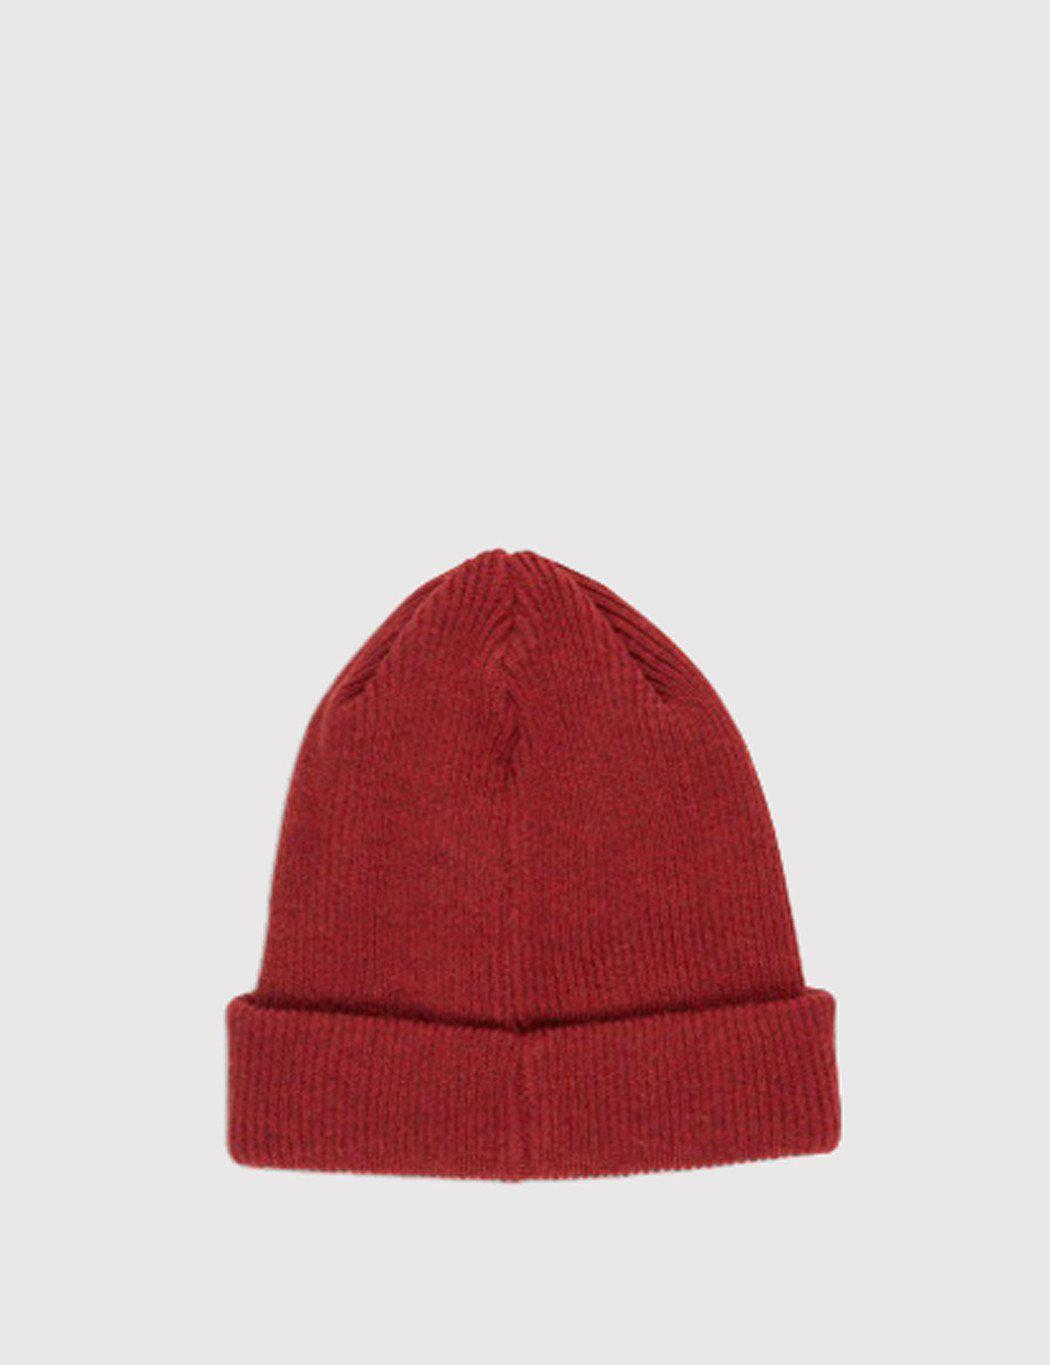 4739254f0a6 Lyst - Norse Projects Norse Beanie Hat in Red